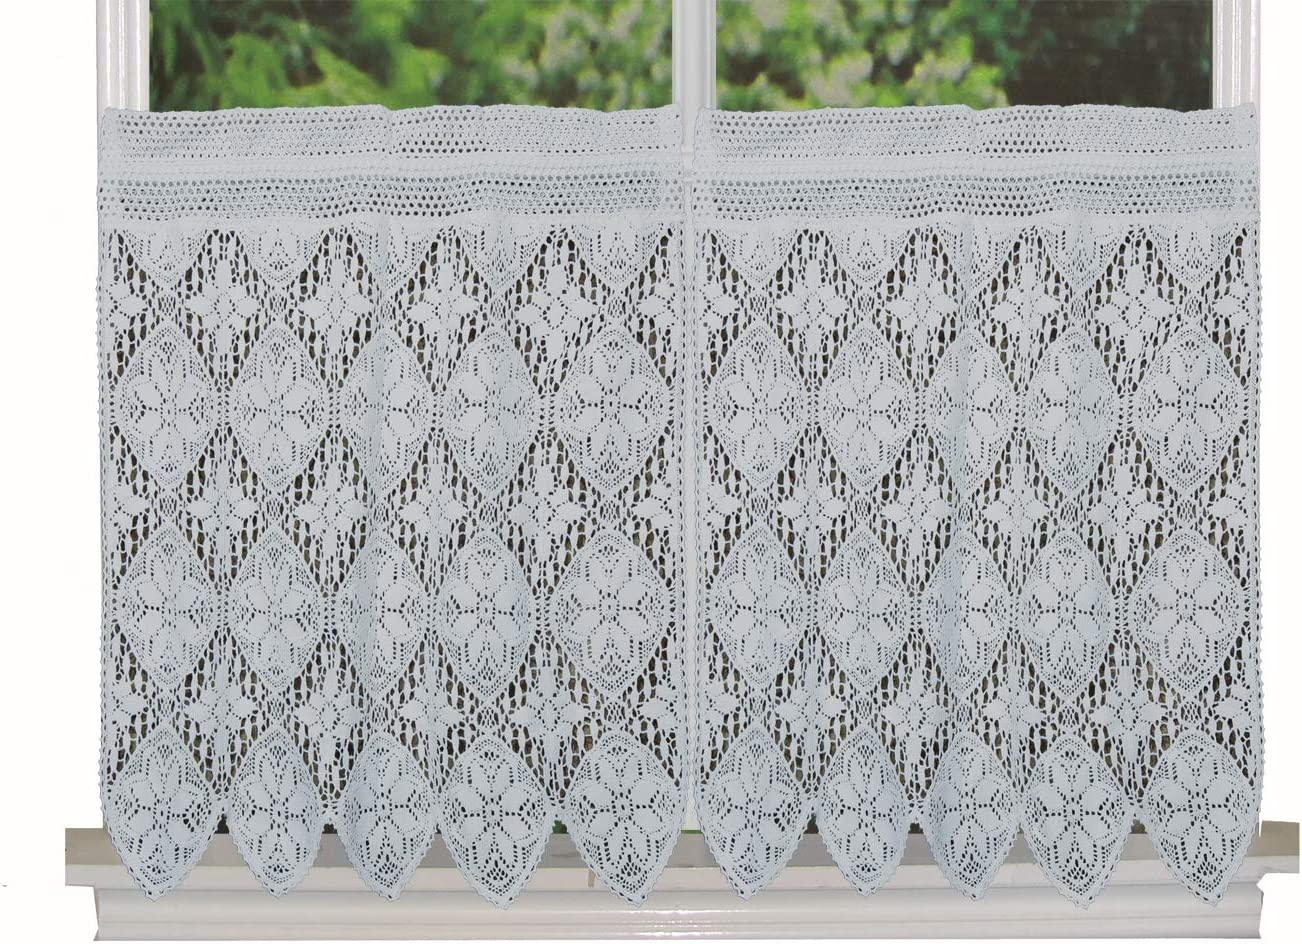 Creative Linens Knitted Crochet Lace Kitchen Curtain 30 L Tiers White, 100 Cotton